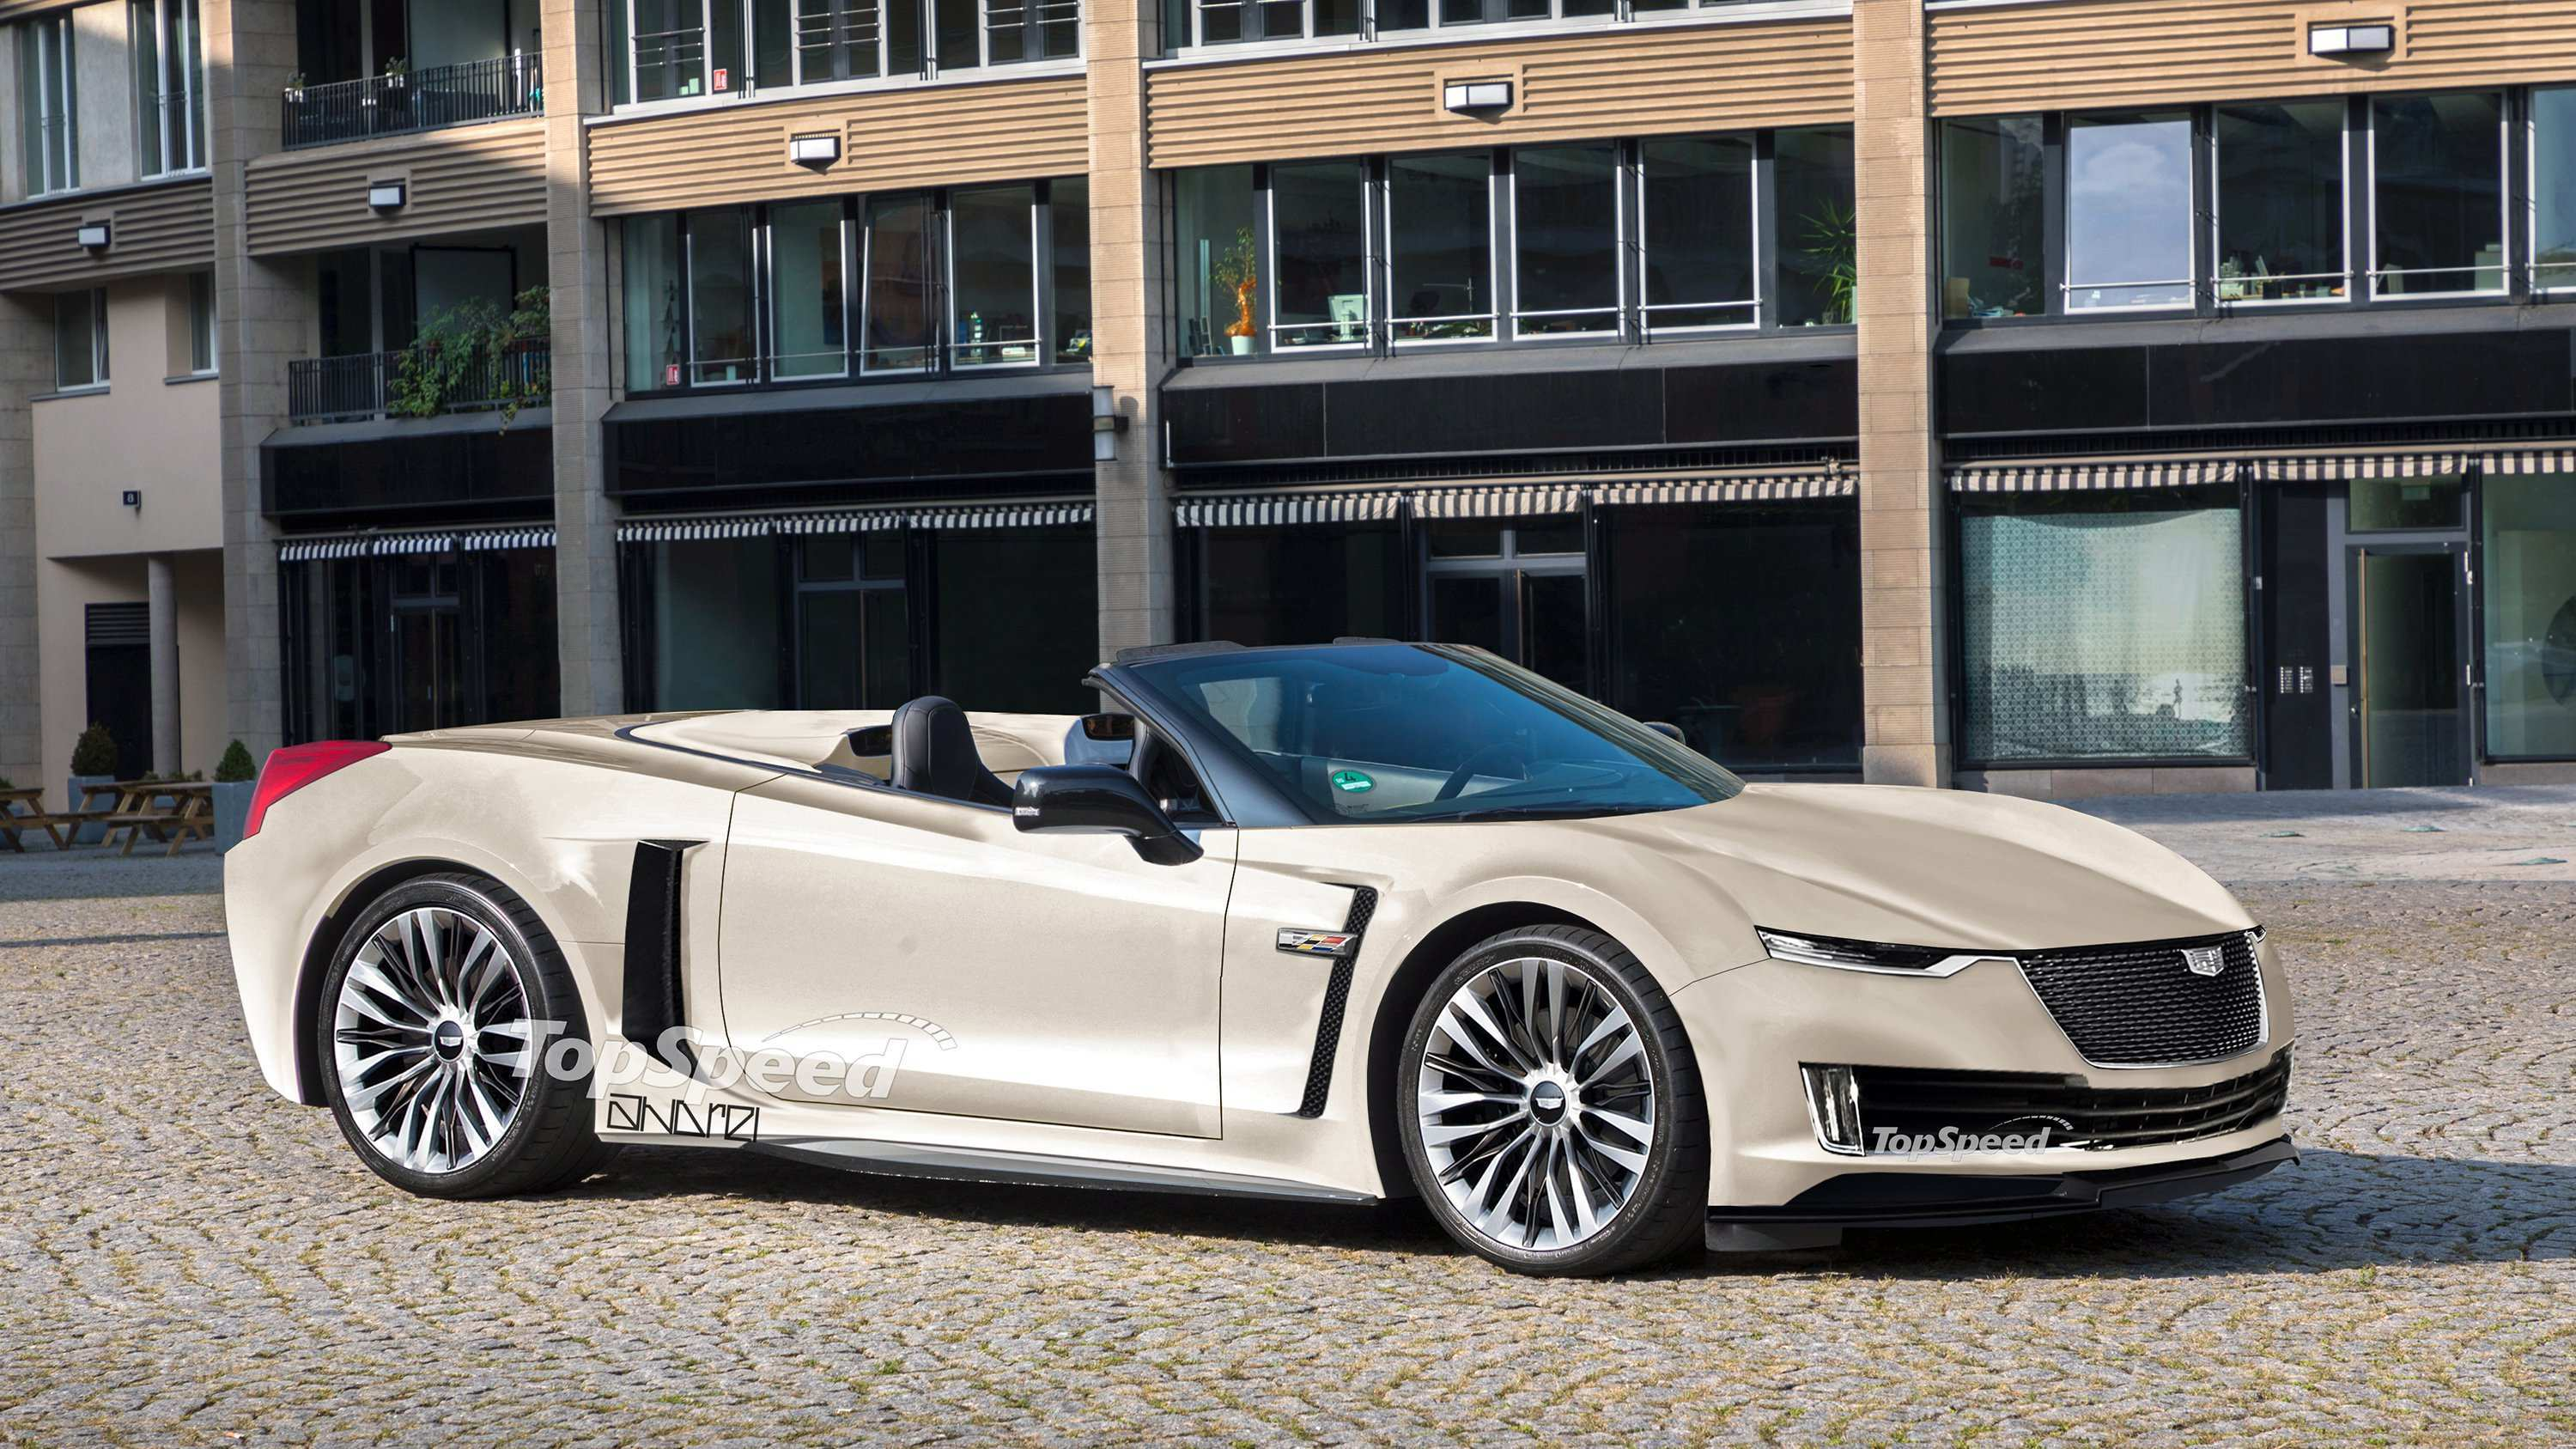 38 The Best 2020 Cadillac Convertible Research New